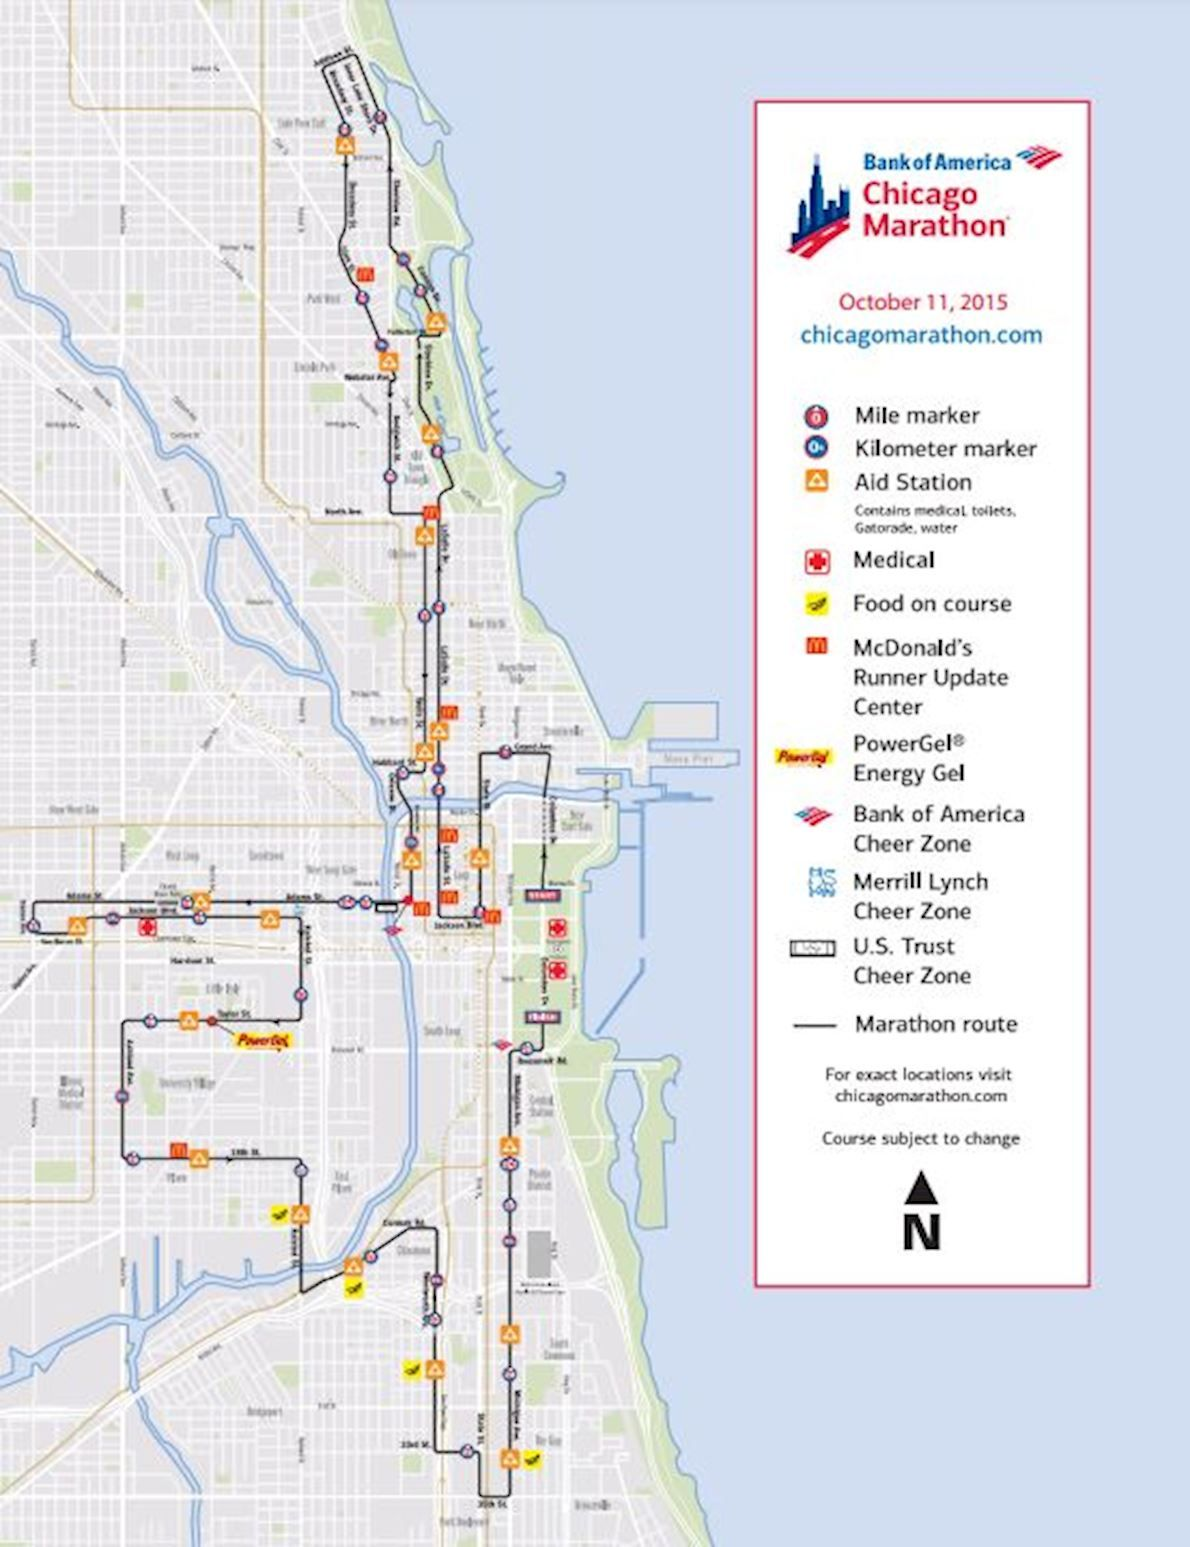 bank of america chicago marathon route map | running